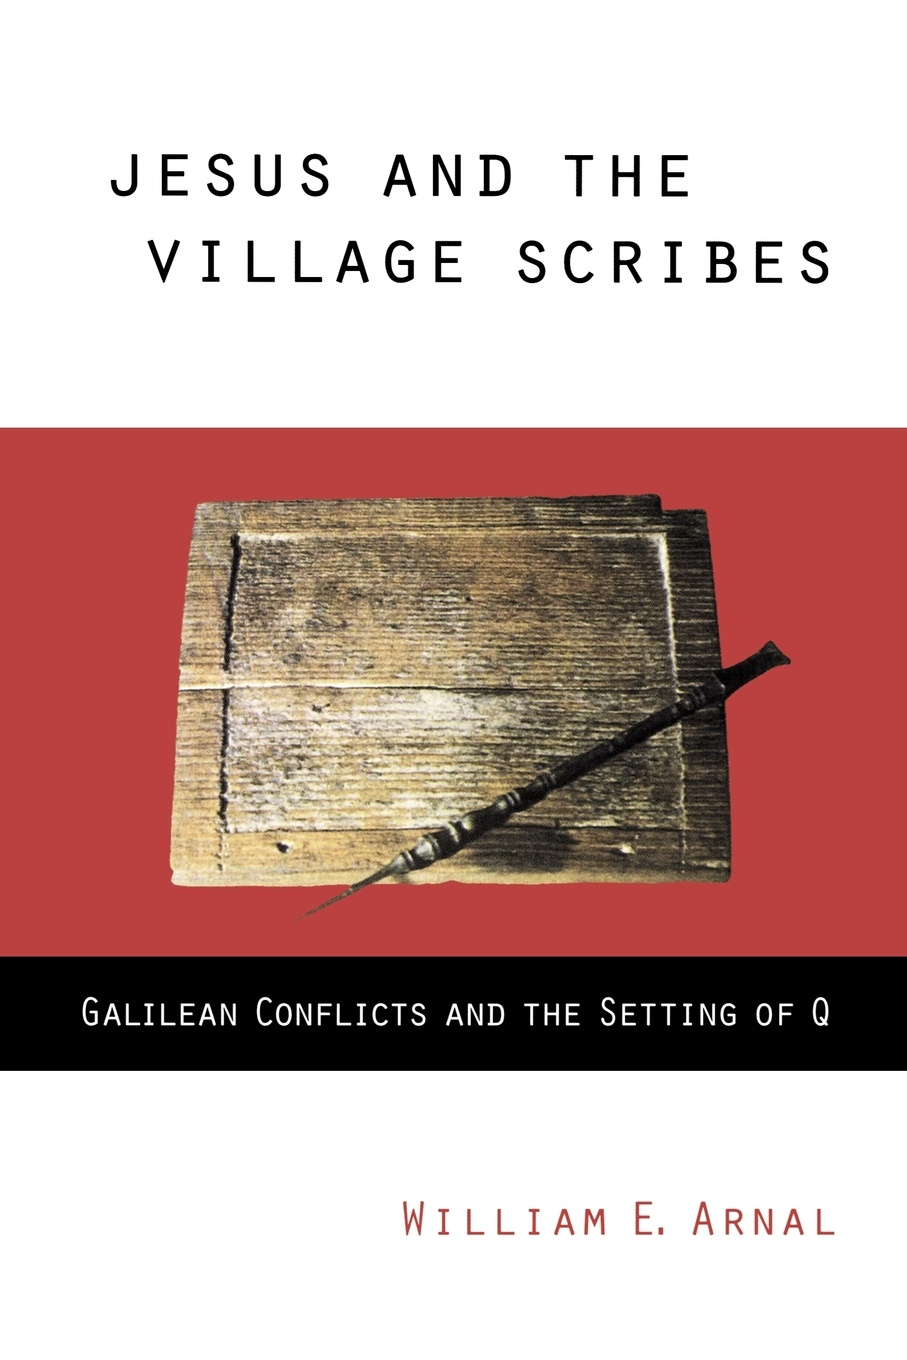 William E Arnal Jesus and the Village Scribes william e arnal jesus and the village scribes